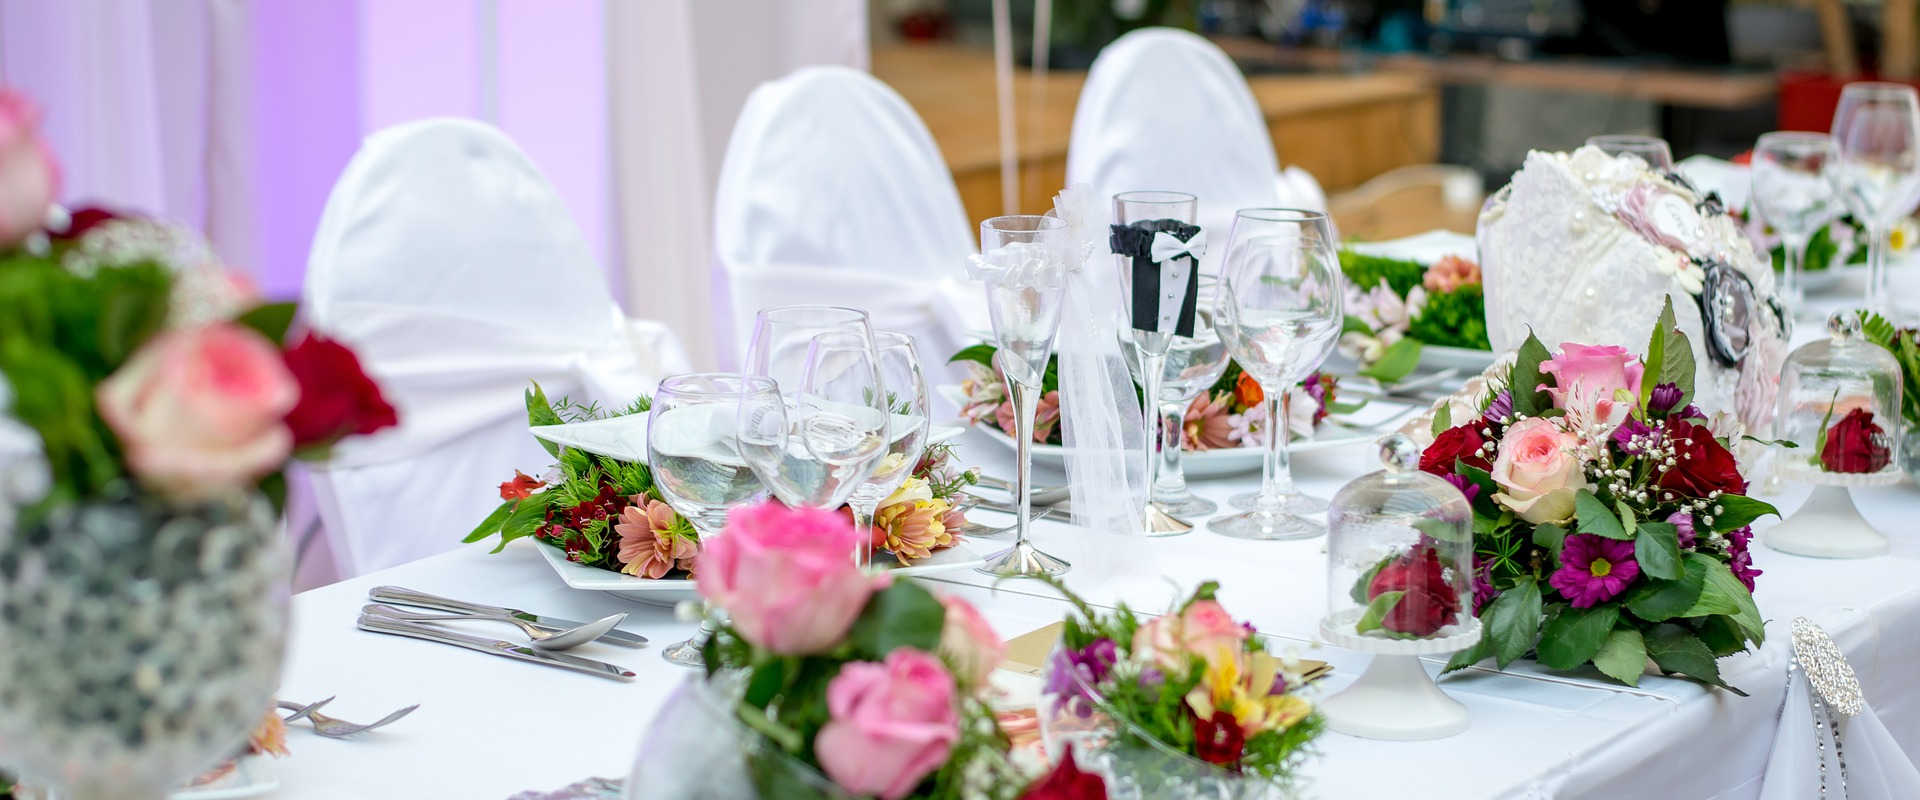 Event rentals in the Surrey BC Metro Area